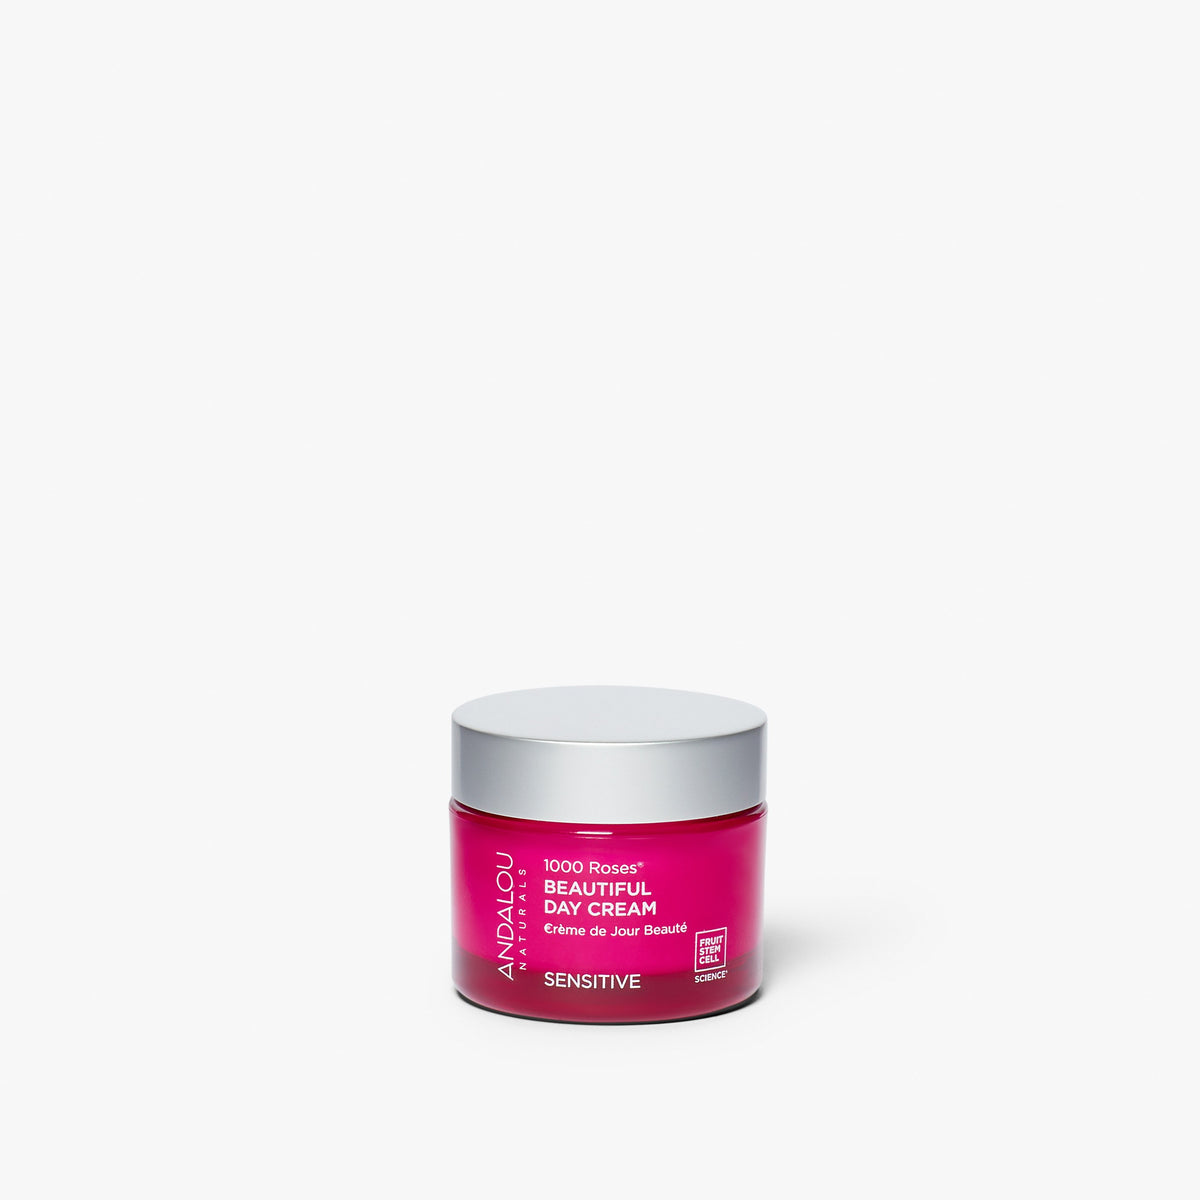 Sensitive 1000 Roses Beautiful Day Cream - Andalou Naturals US